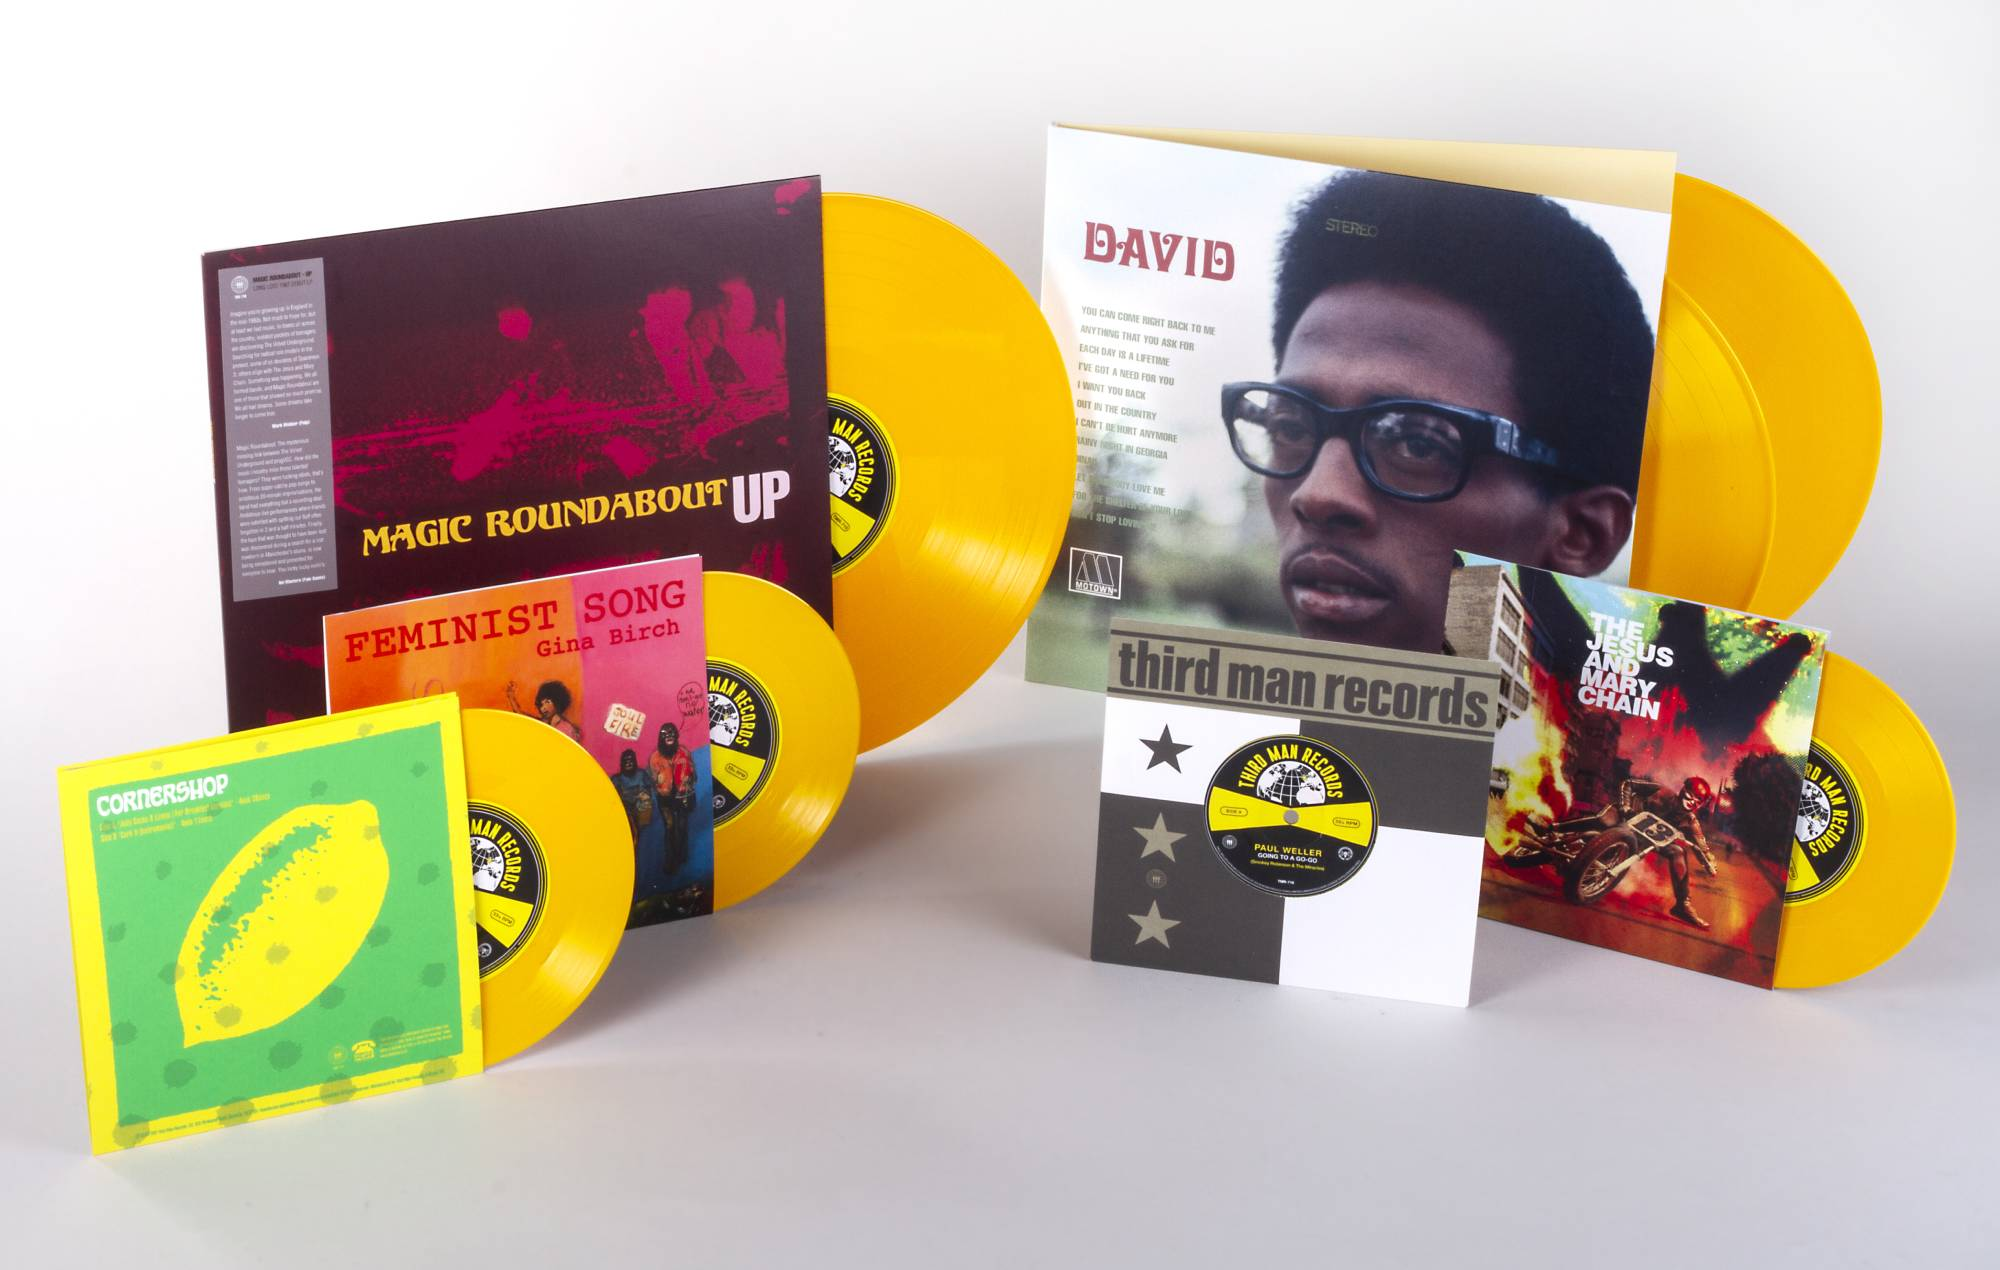 Third Man Records' London releases